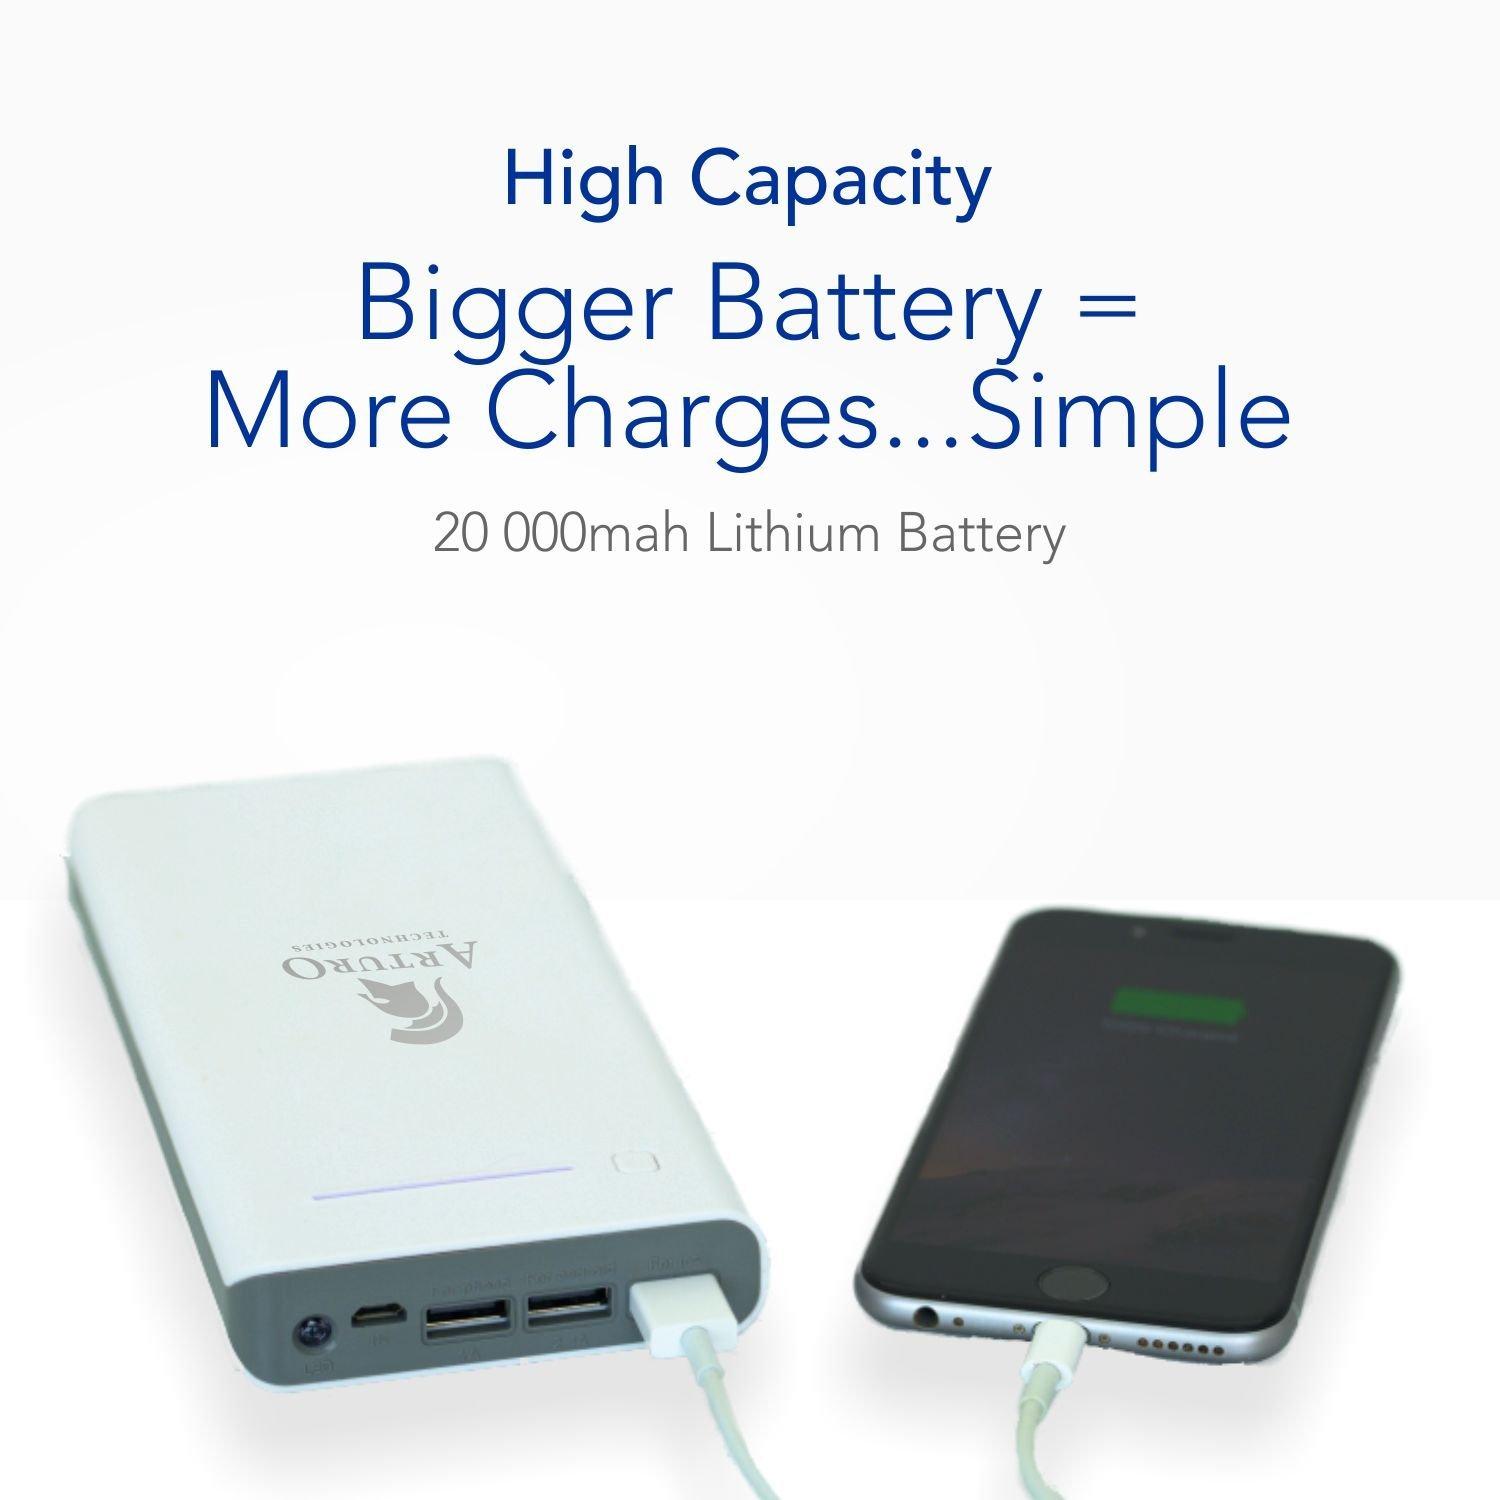 20000mah 3 Port Usb Cell Phone Portable Charger By Arturotech Power Simple Mobile Battery Bank For Iphone Samsung Ipad Android Devices And More